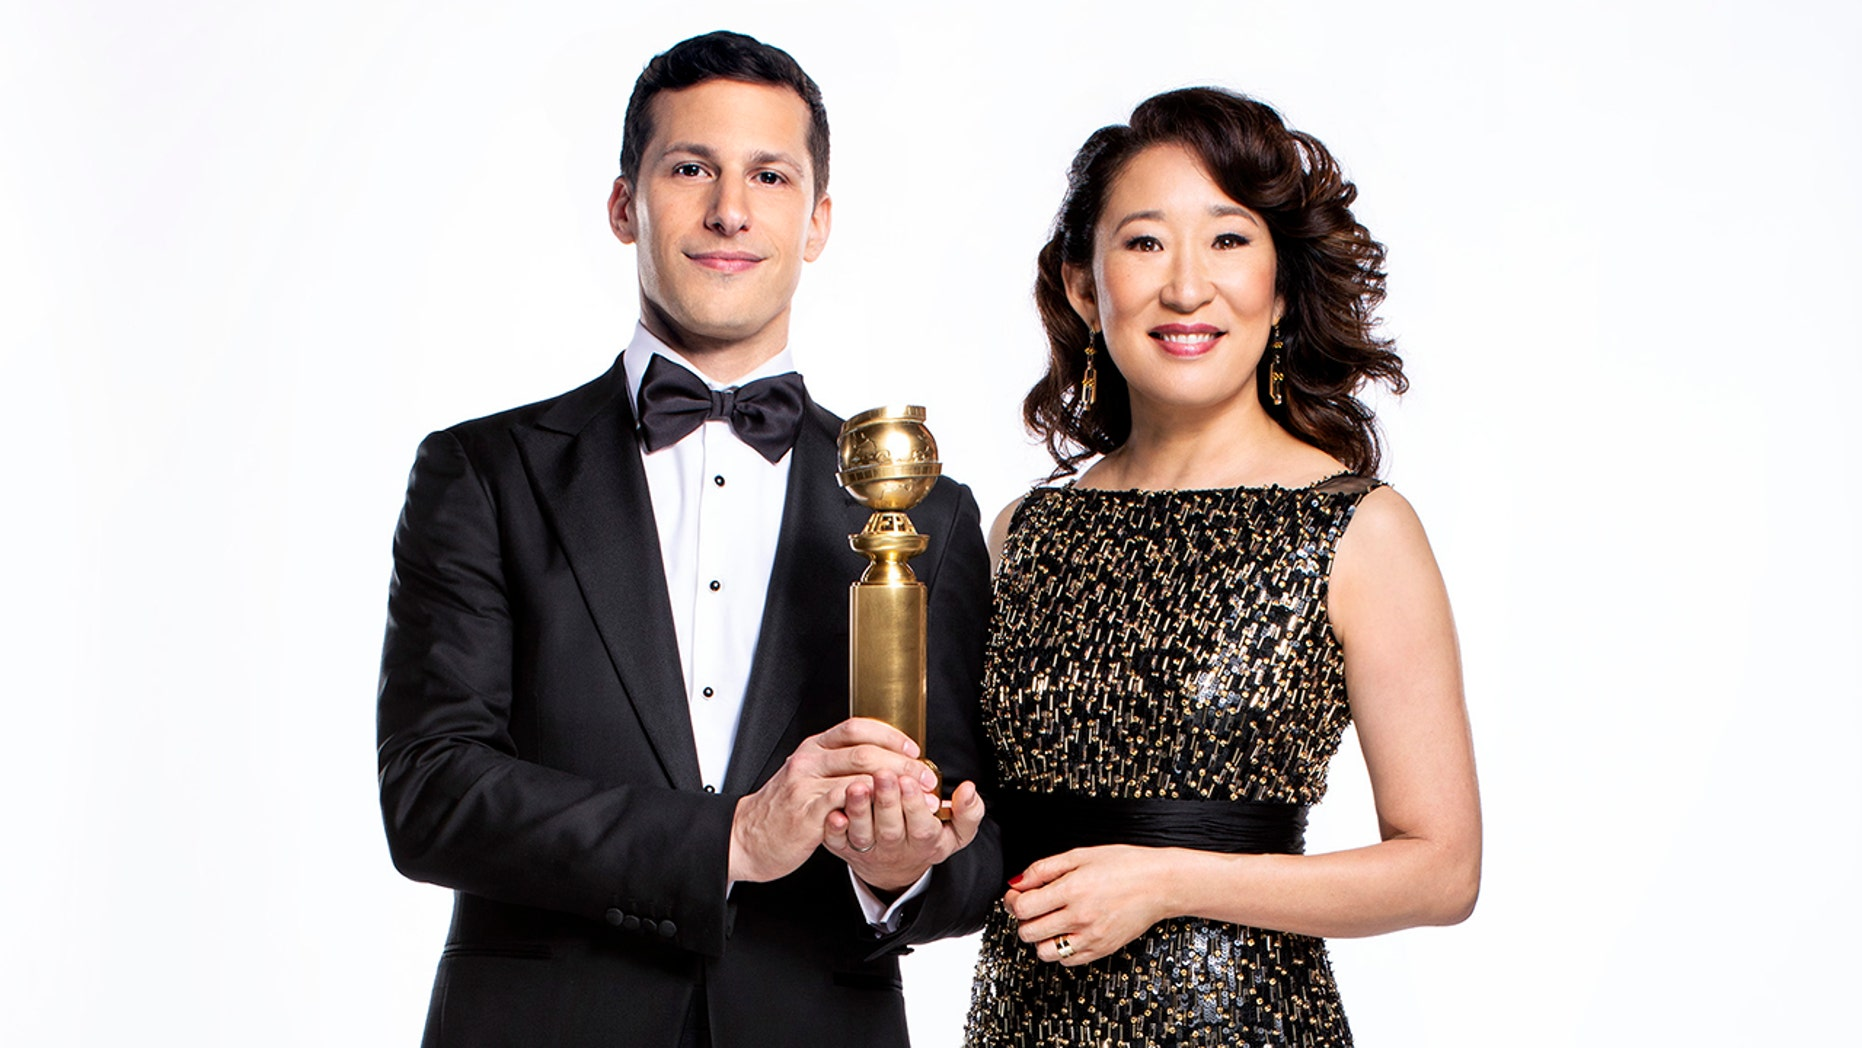 Here's what to expect at the 2019 Golden Globe Awards